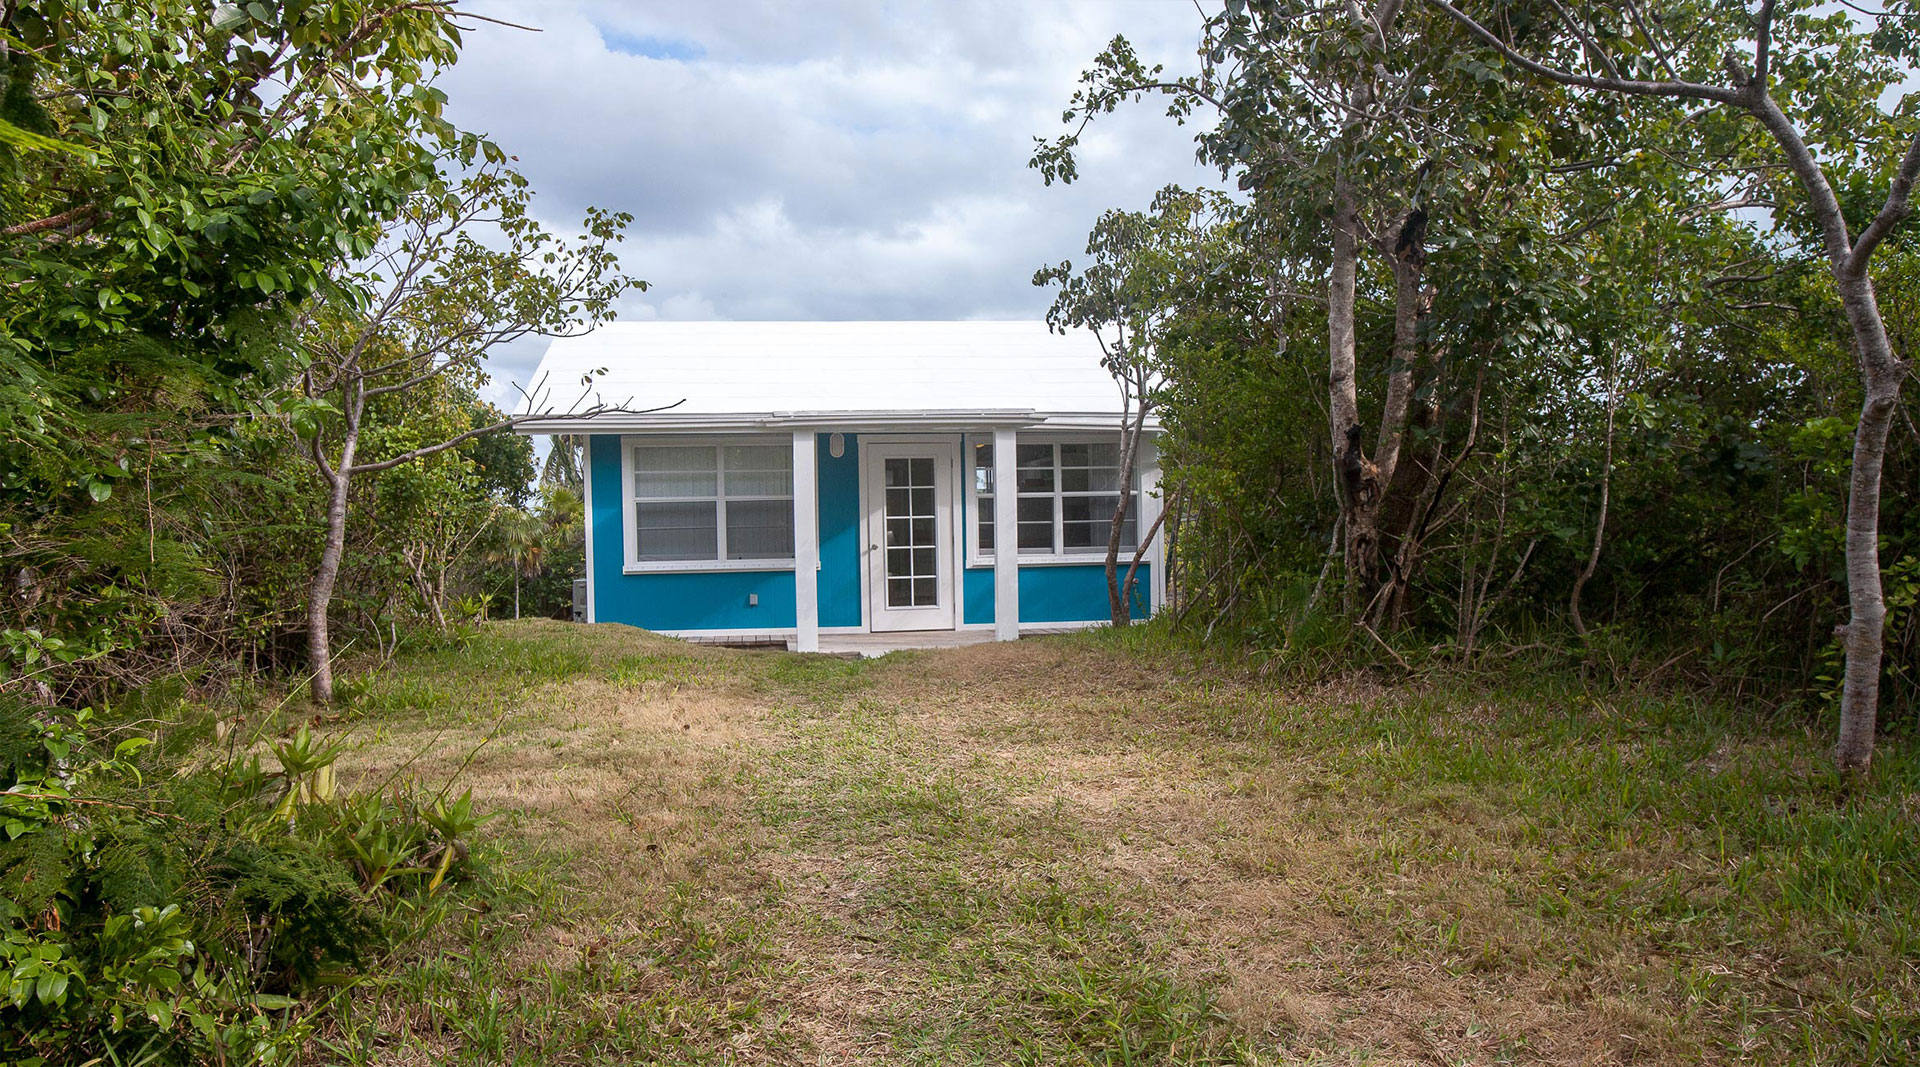 Great guana cay abaco little blue cottage vacation rental for Vacation cottage